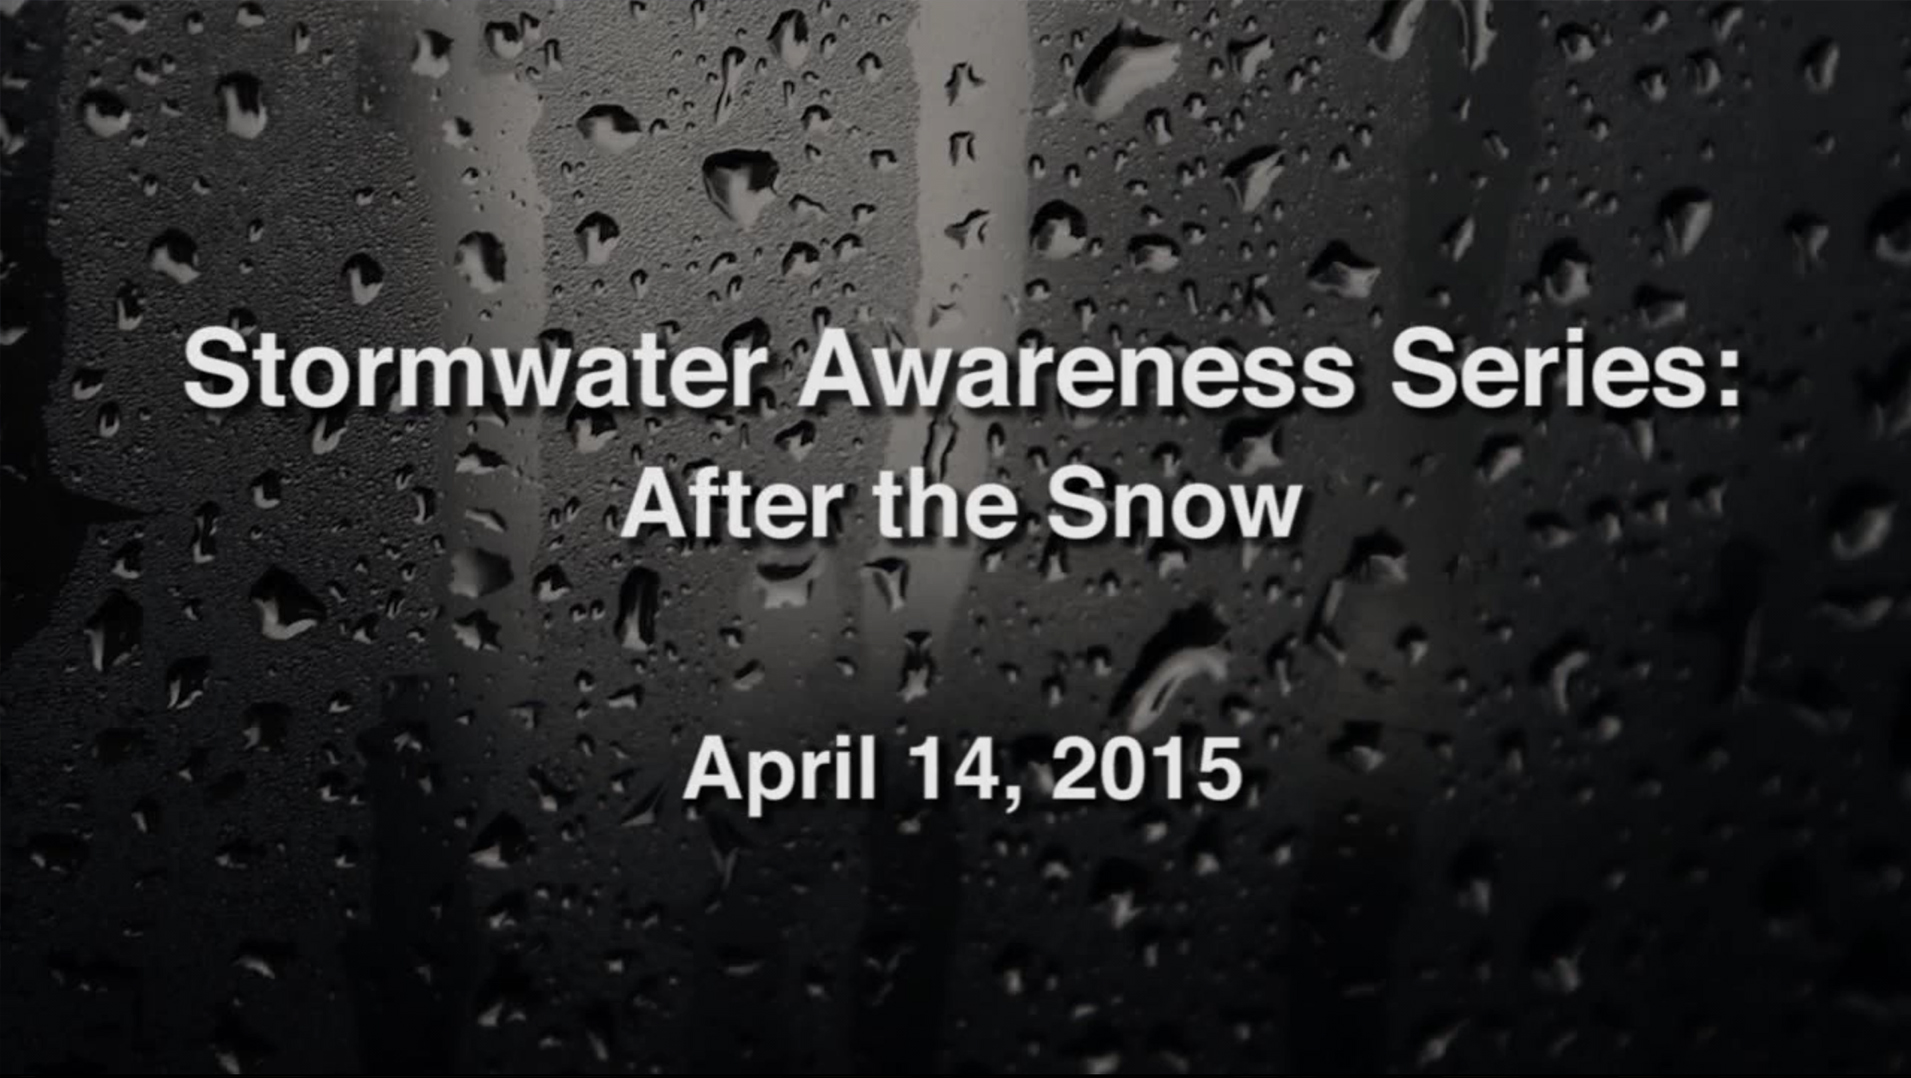 Stormwater Awareness Series: After the Snow – April 14, 2015